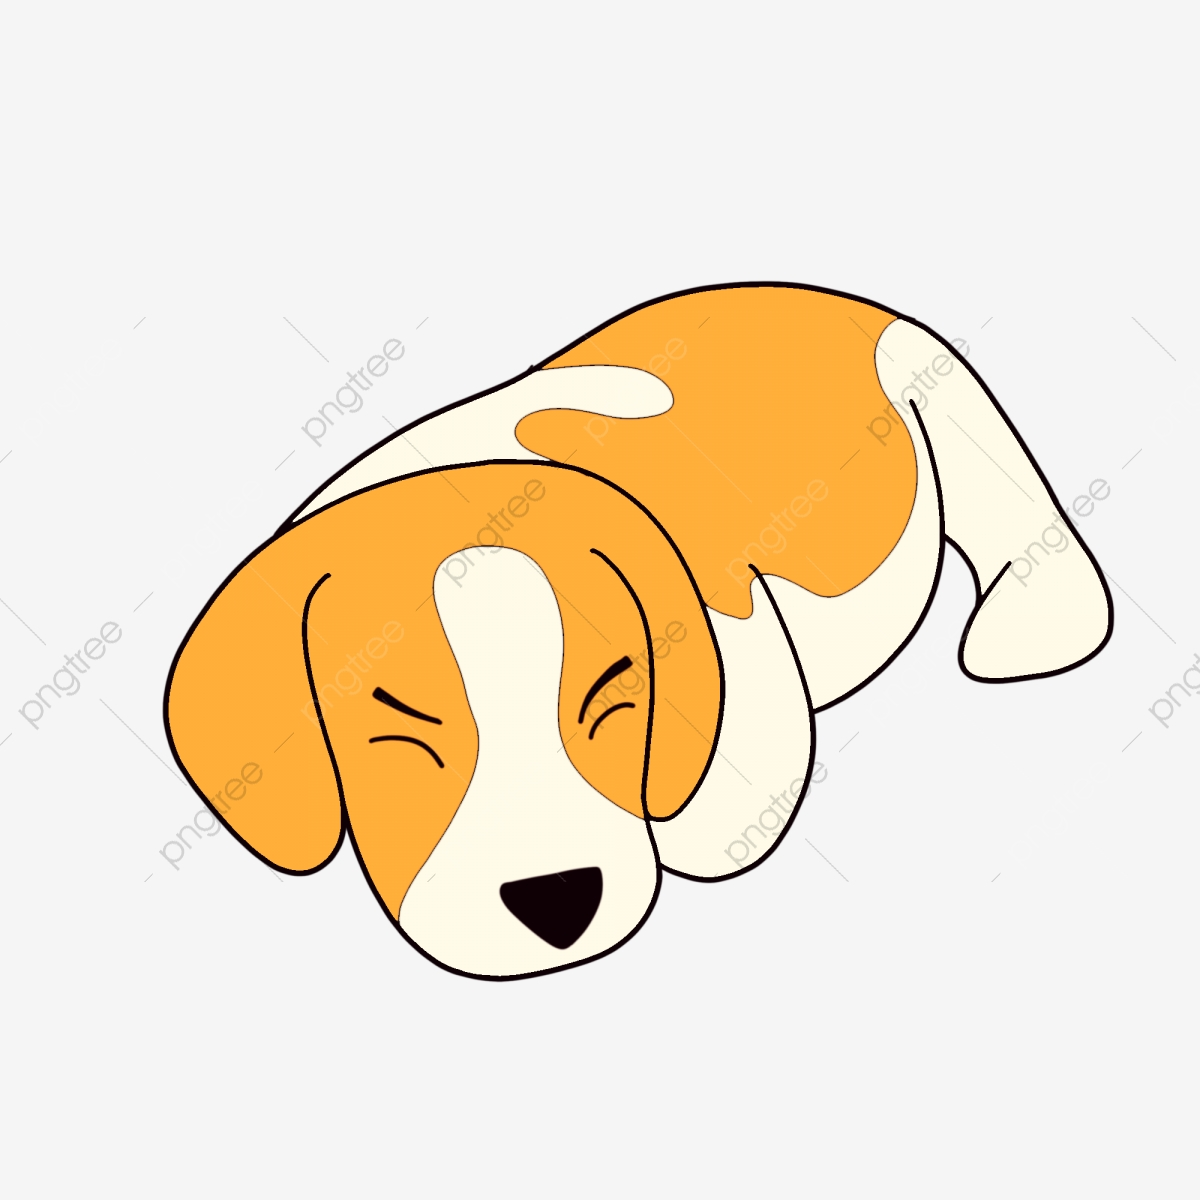 Sleeping Cartoon Puppy Design, Hand Painted, Cartoon, Color.